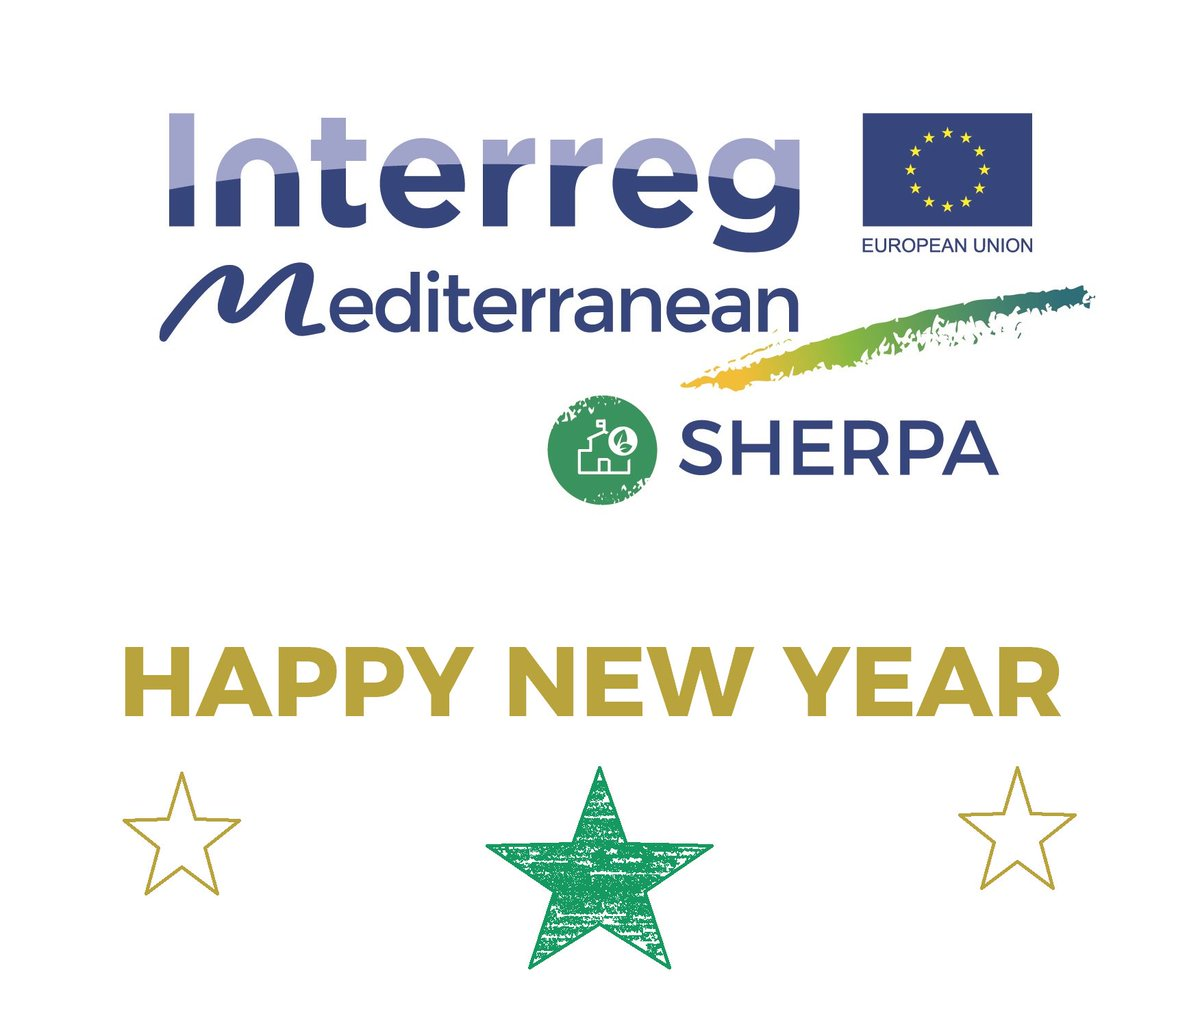 sherpa project on twitter sherpamed and its team wish you a happy new year filled with joy prosperity and energy efficiency